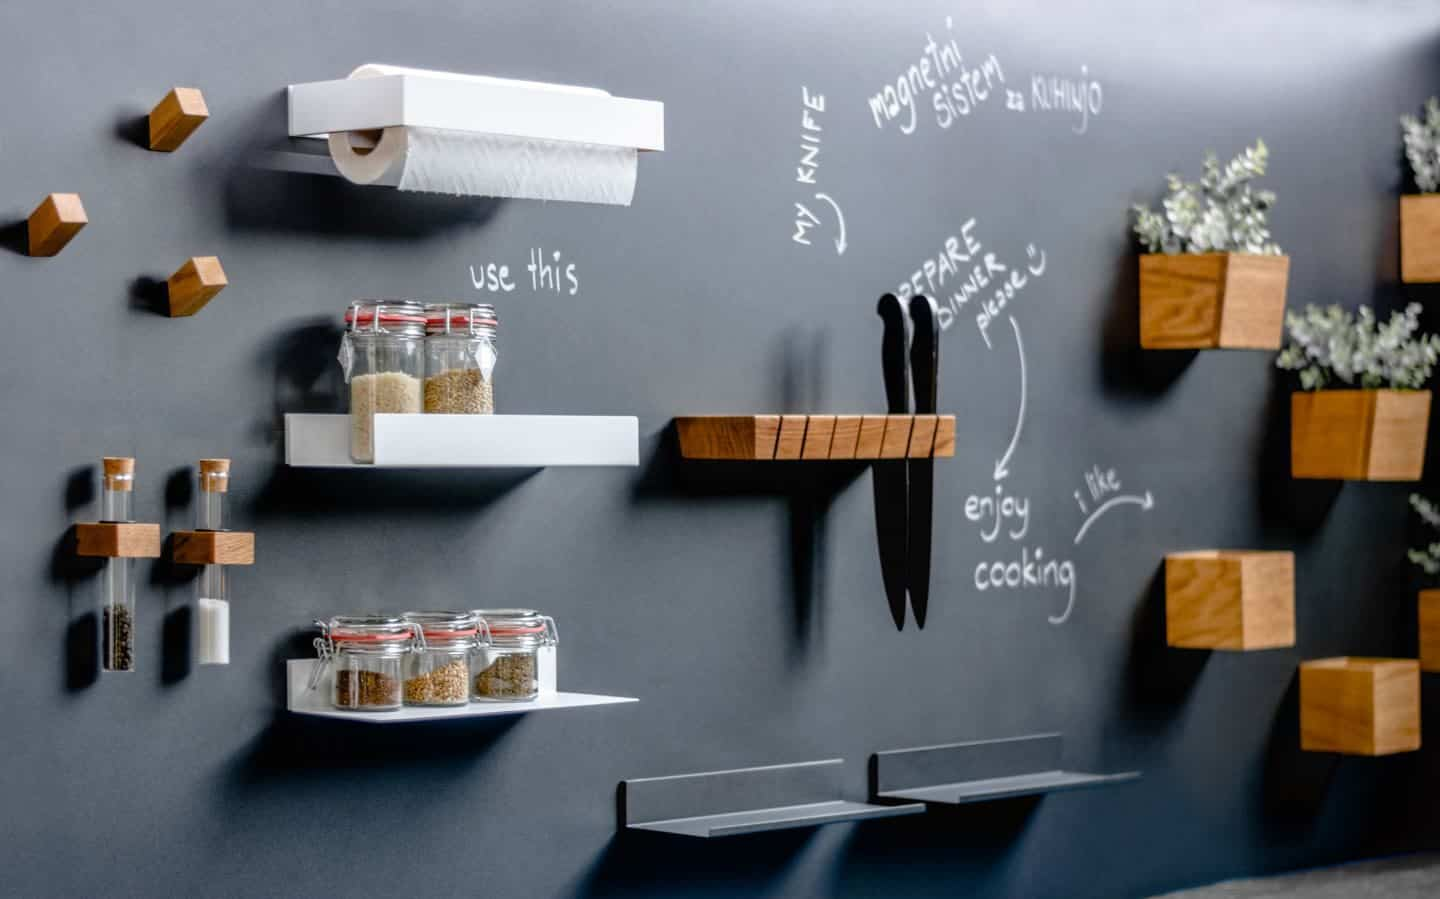 Steelline_magnet, a Magnetic Storage System by 3s design used in a kitchen. Photo Teodor Hribovsek